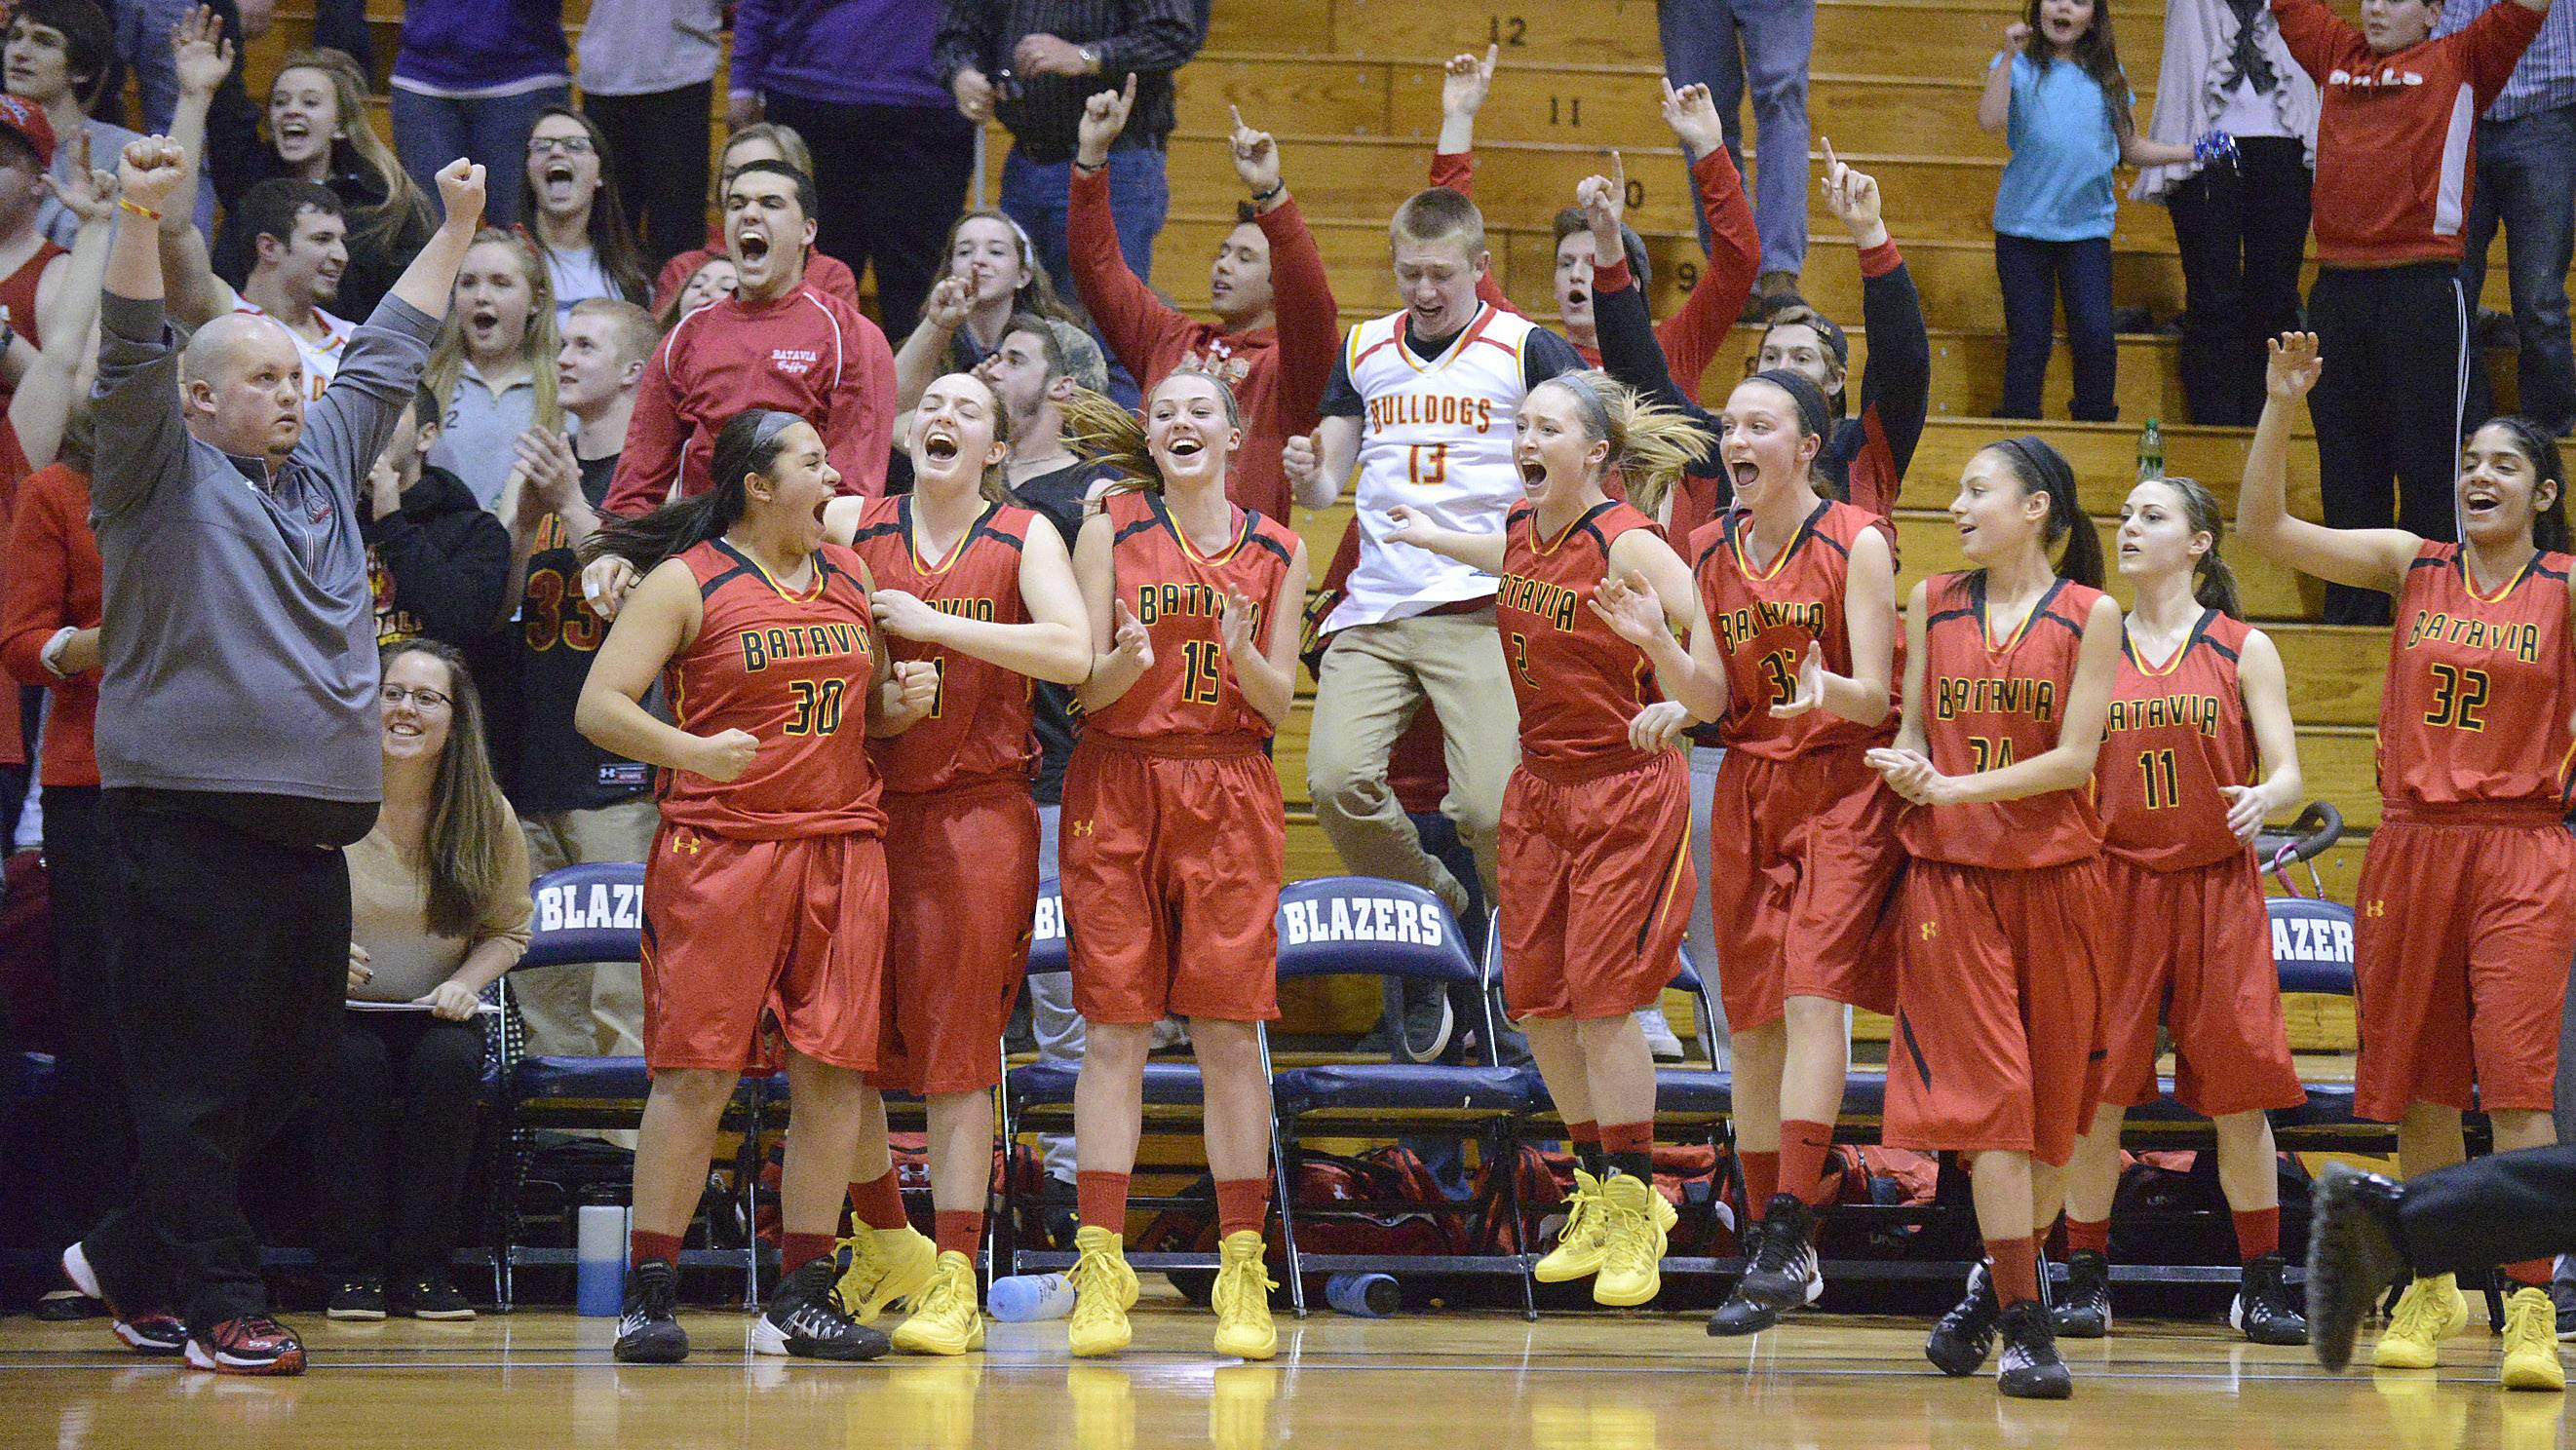 Batavia's head coach Kevin Jensen, far left, and the Bulldogs react after the game.